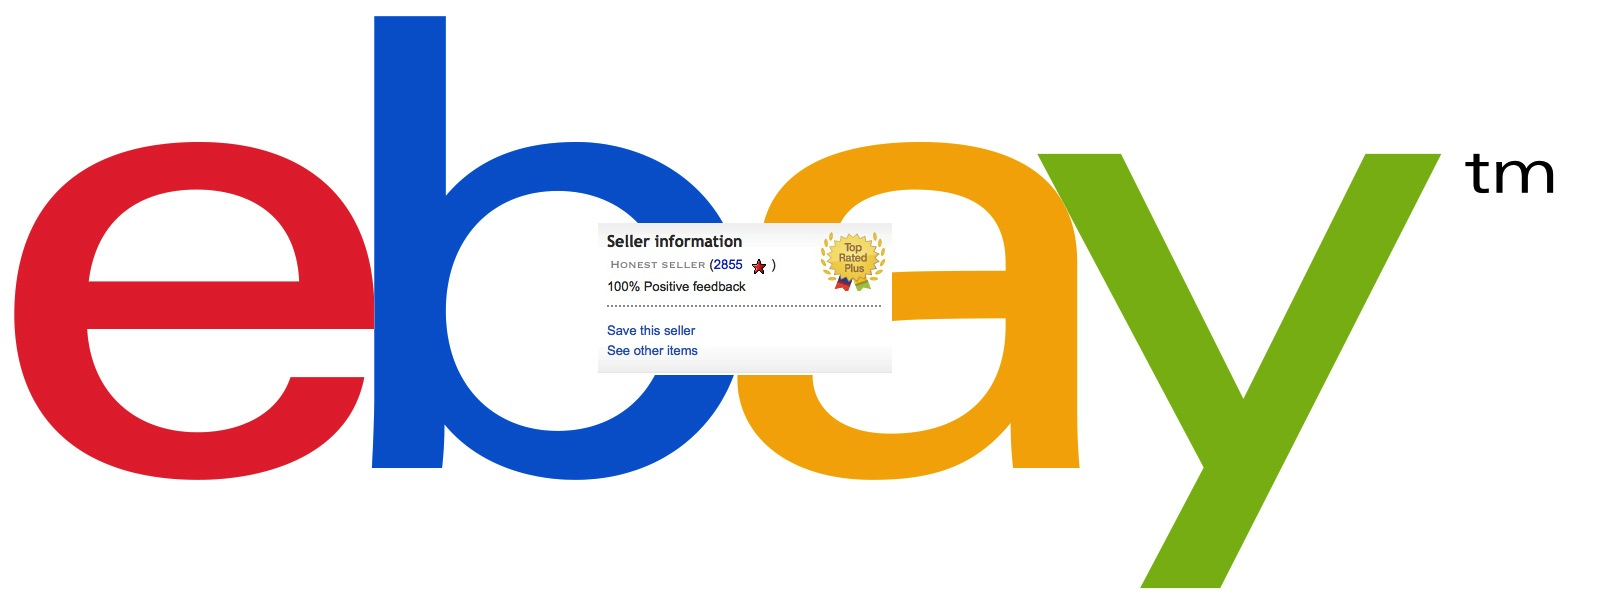 ebay how to see your feedback